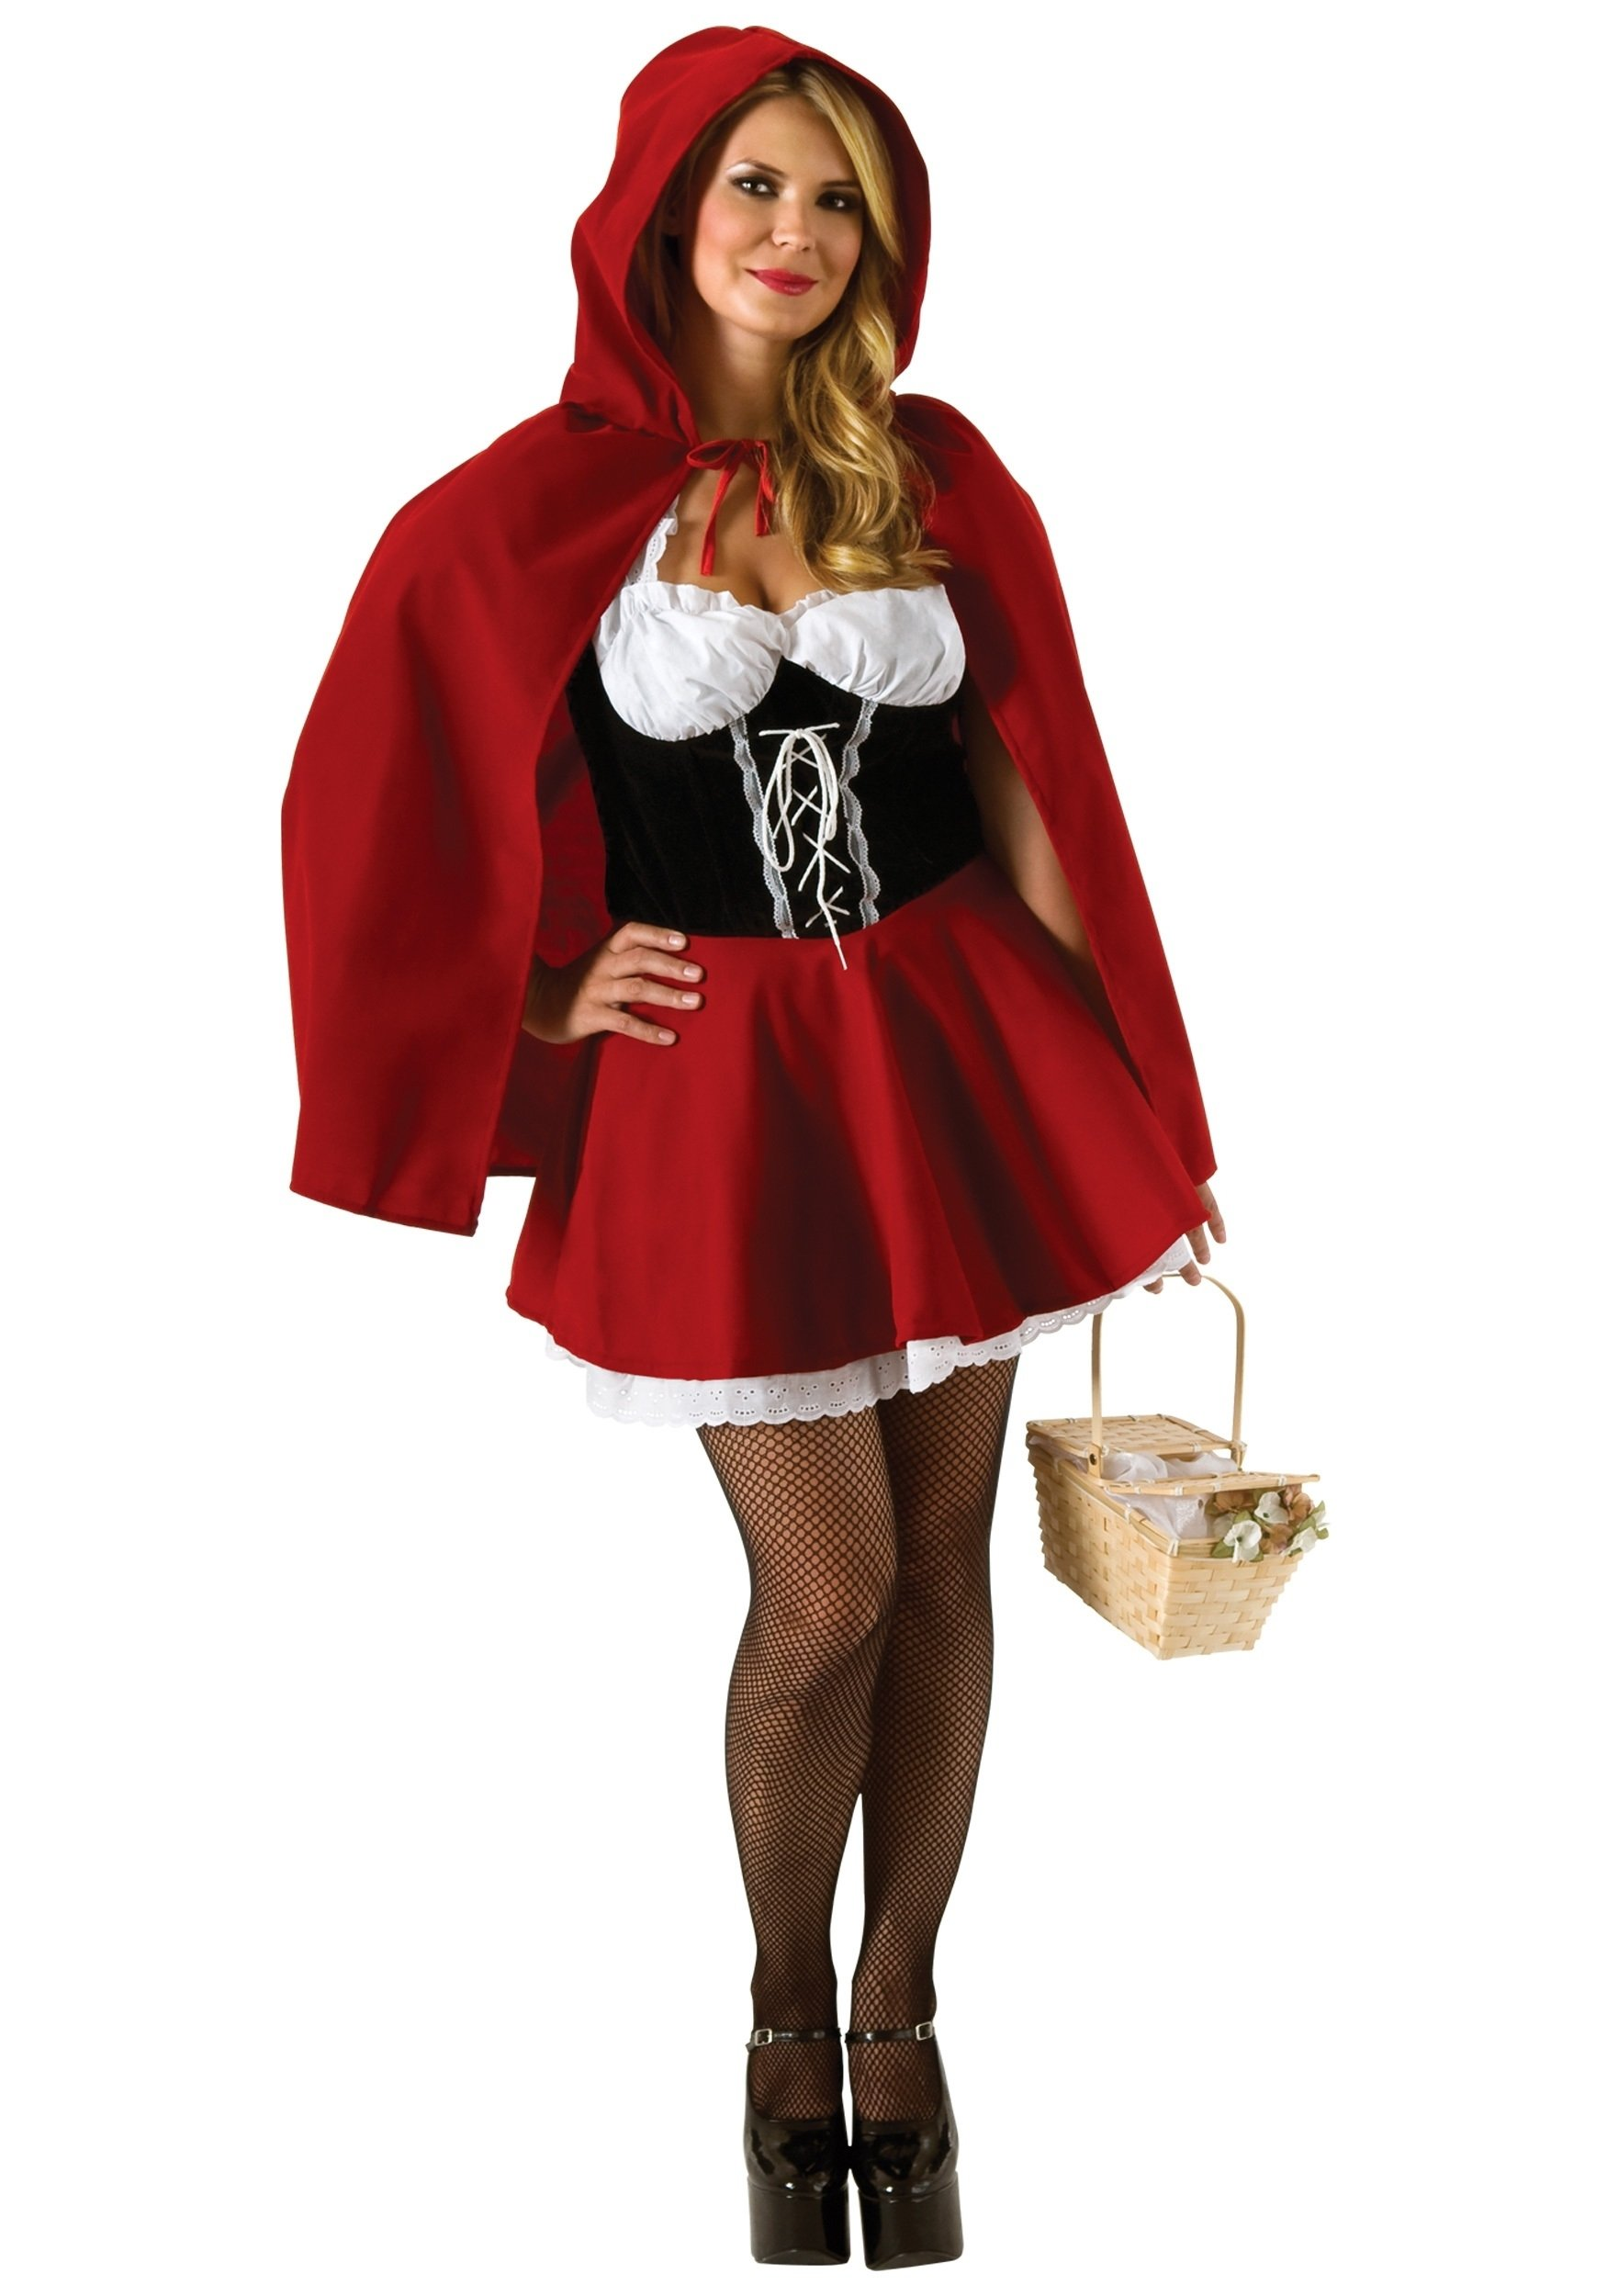 10 Trendy Red Riding Hood Costume Ideas plus size red riding hood costume 2020